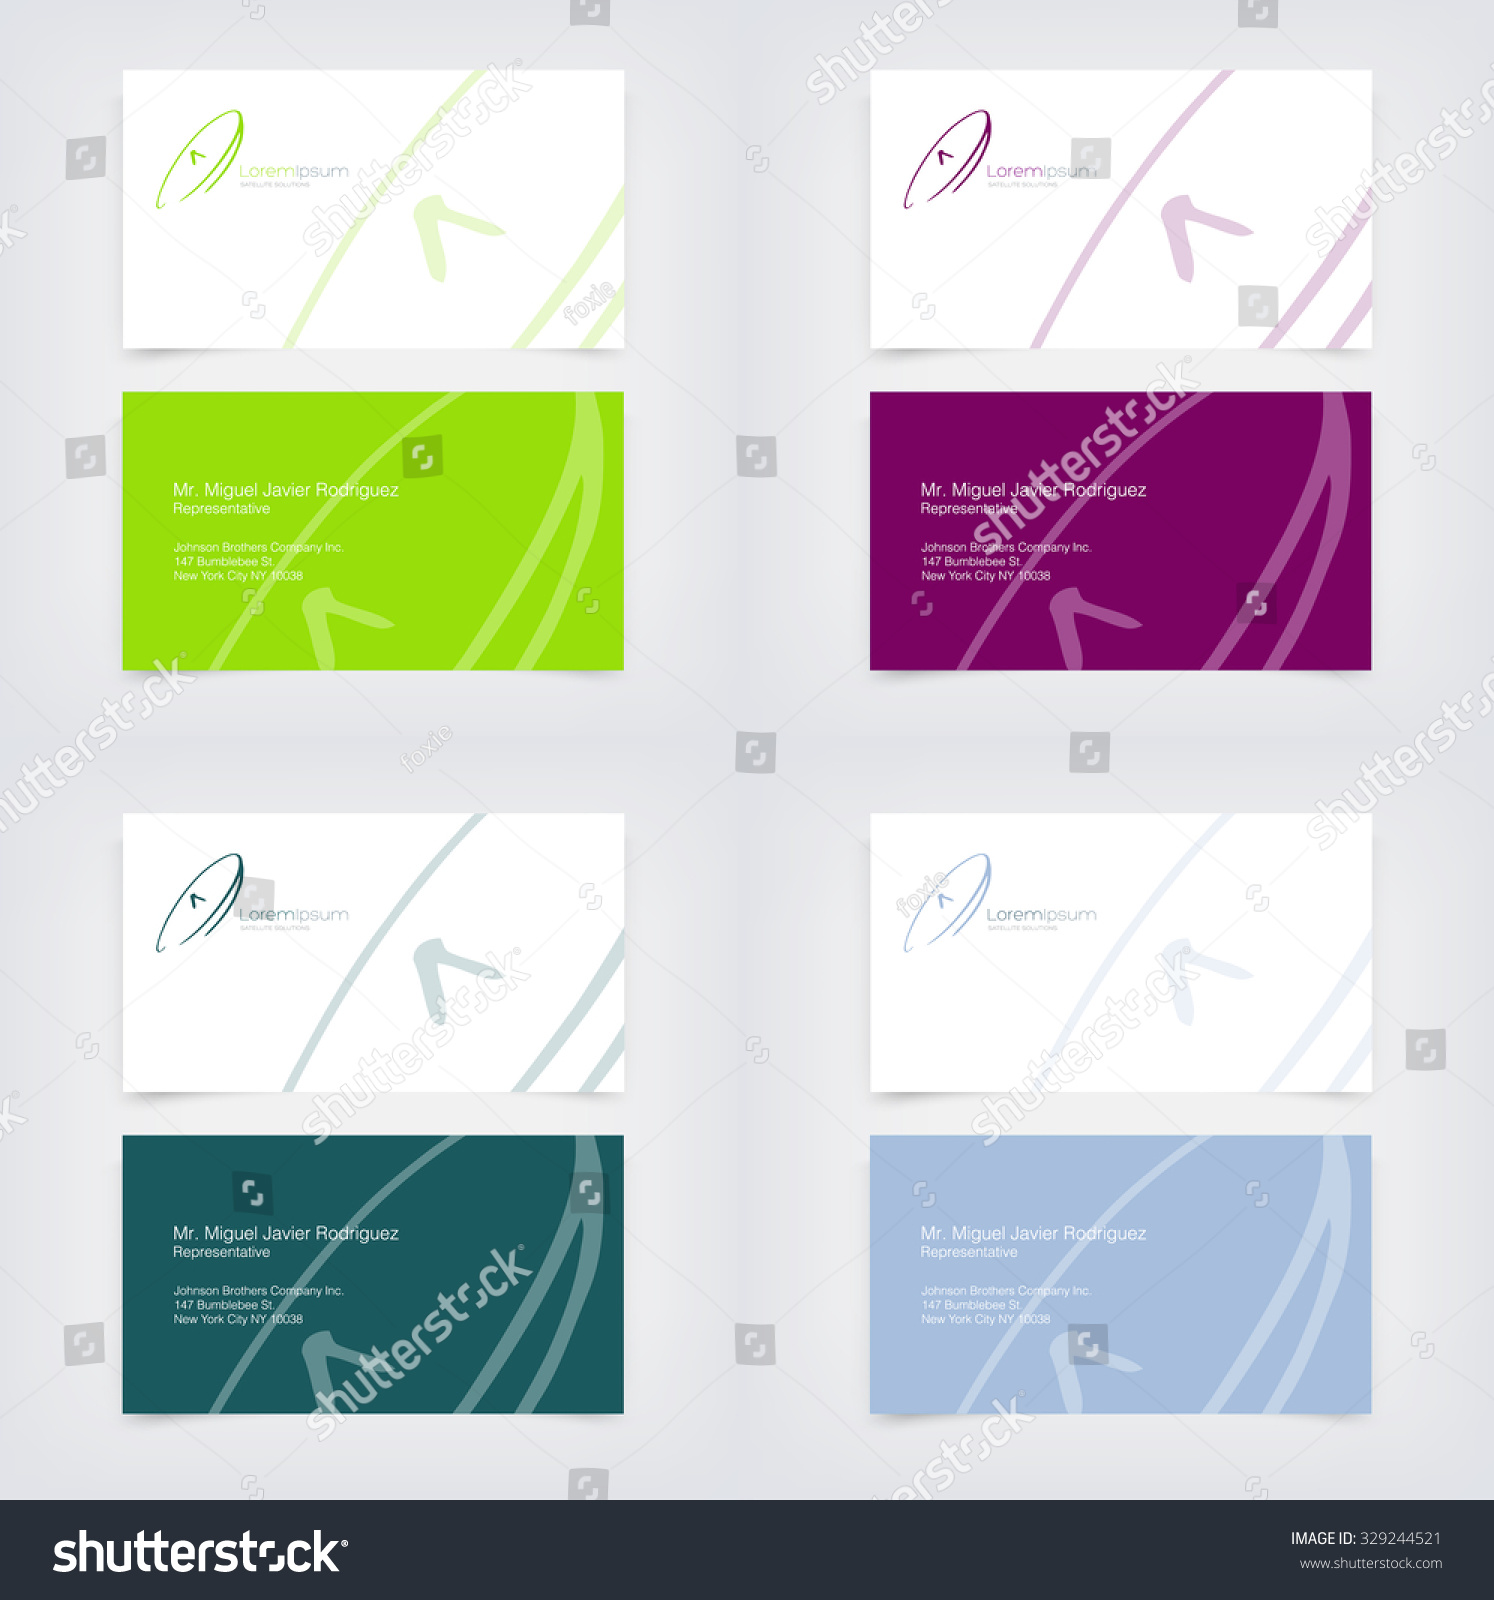 Vector Business Card Design Templates Collection Stock Vector